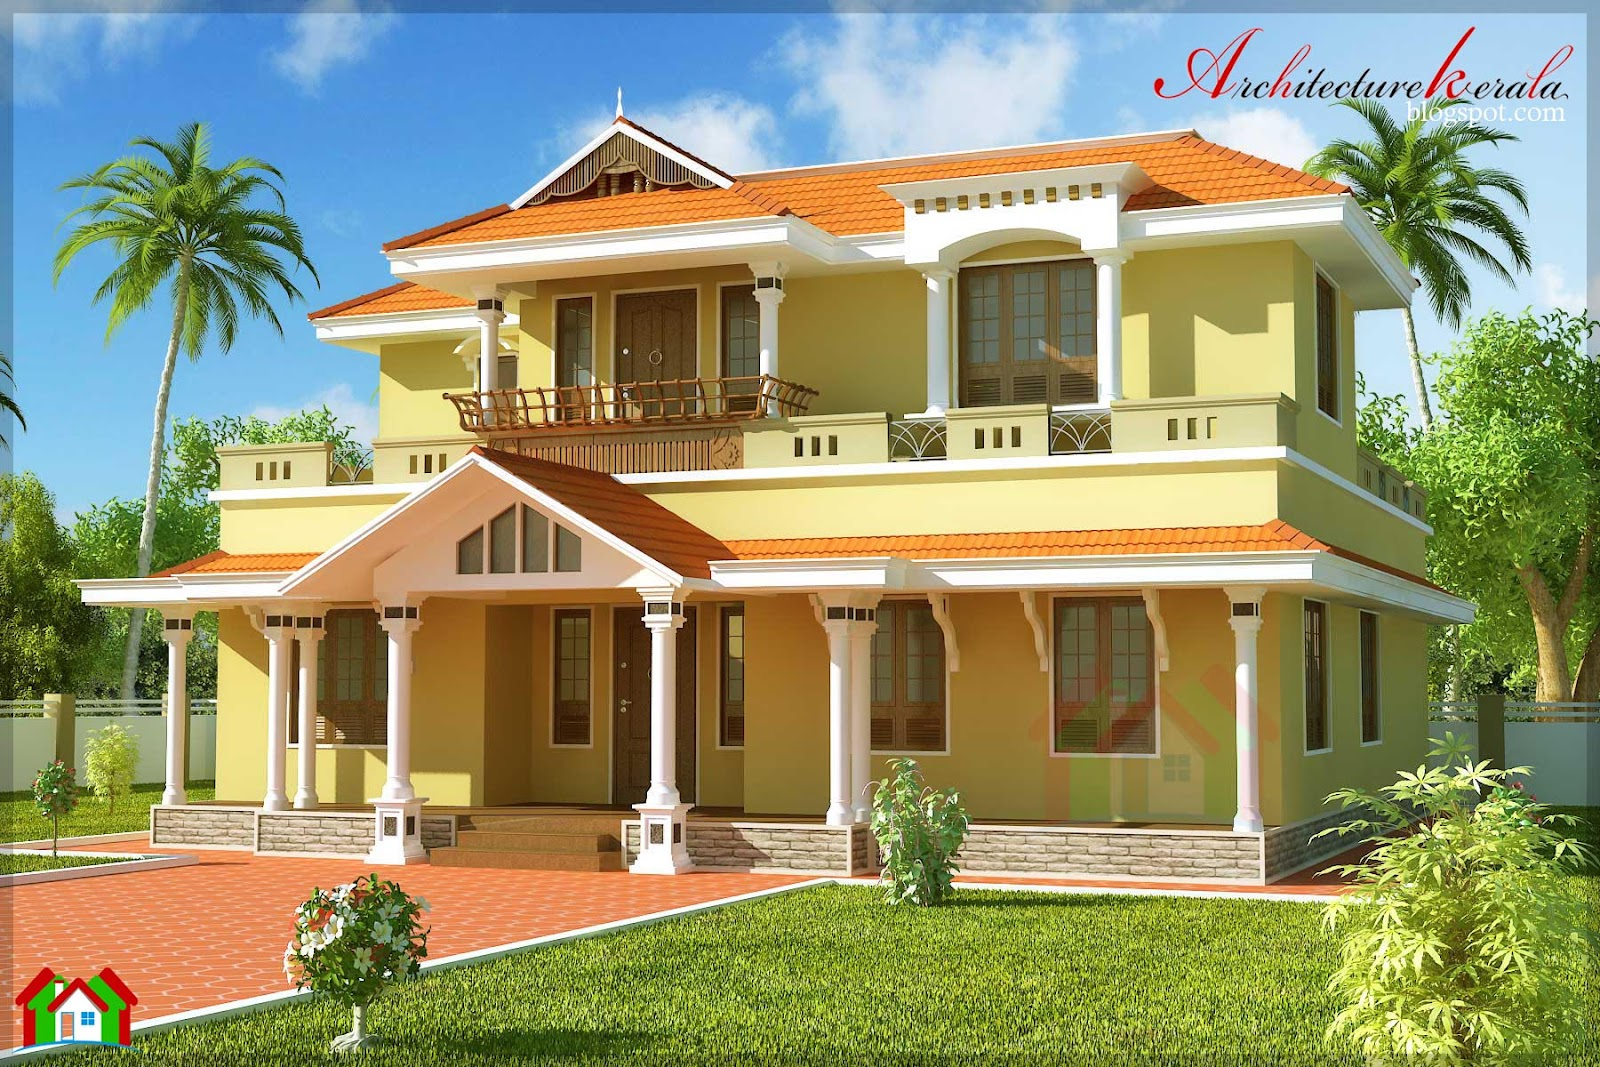 Architecture kerala 2500 square feet traditional style for Kerala traditional home plans